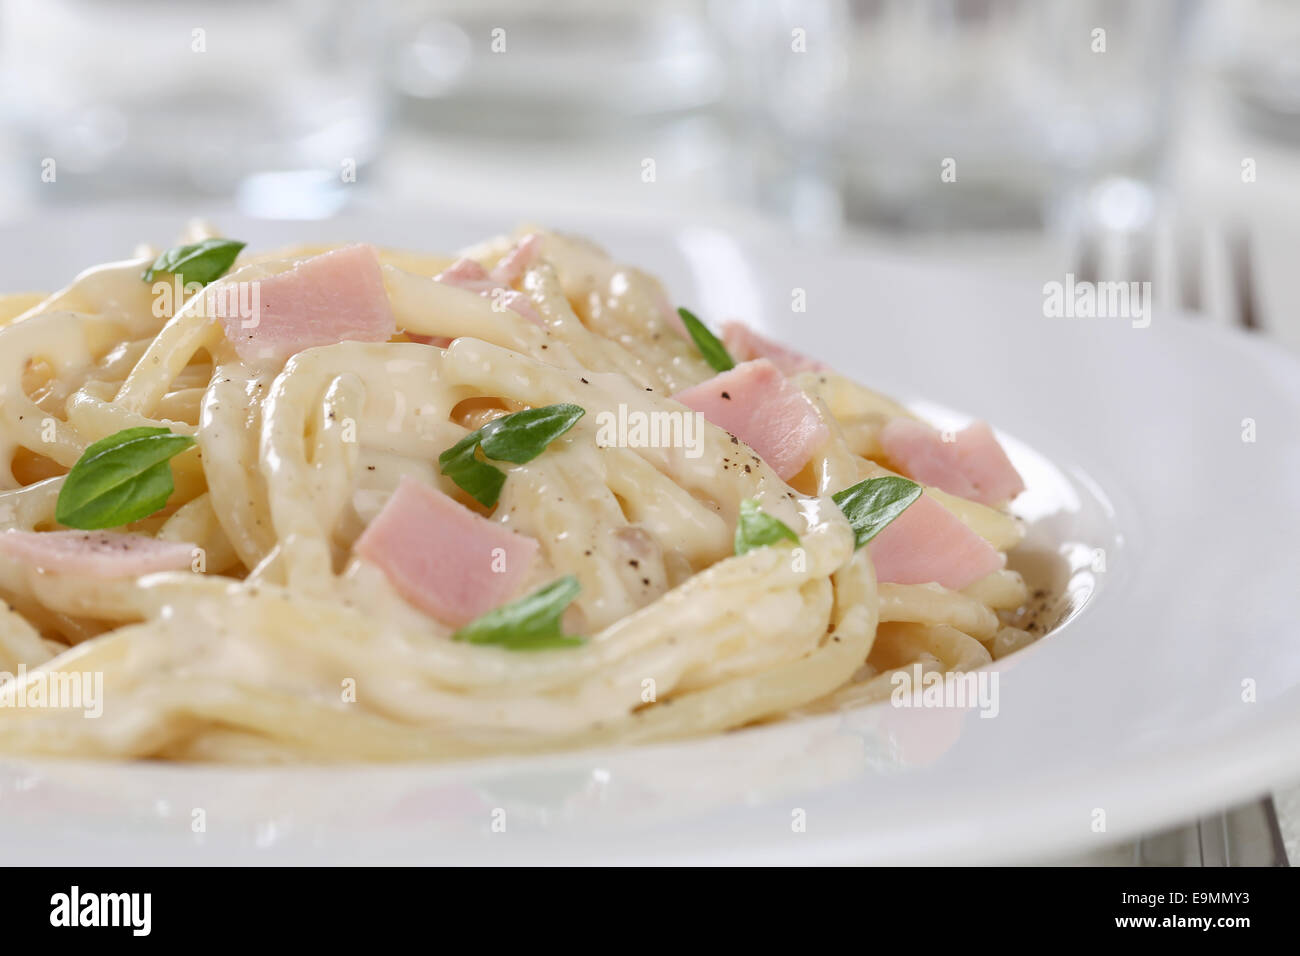 Spaghetti Carbonara noodles pasta meal with ham on a plate - Stock Image